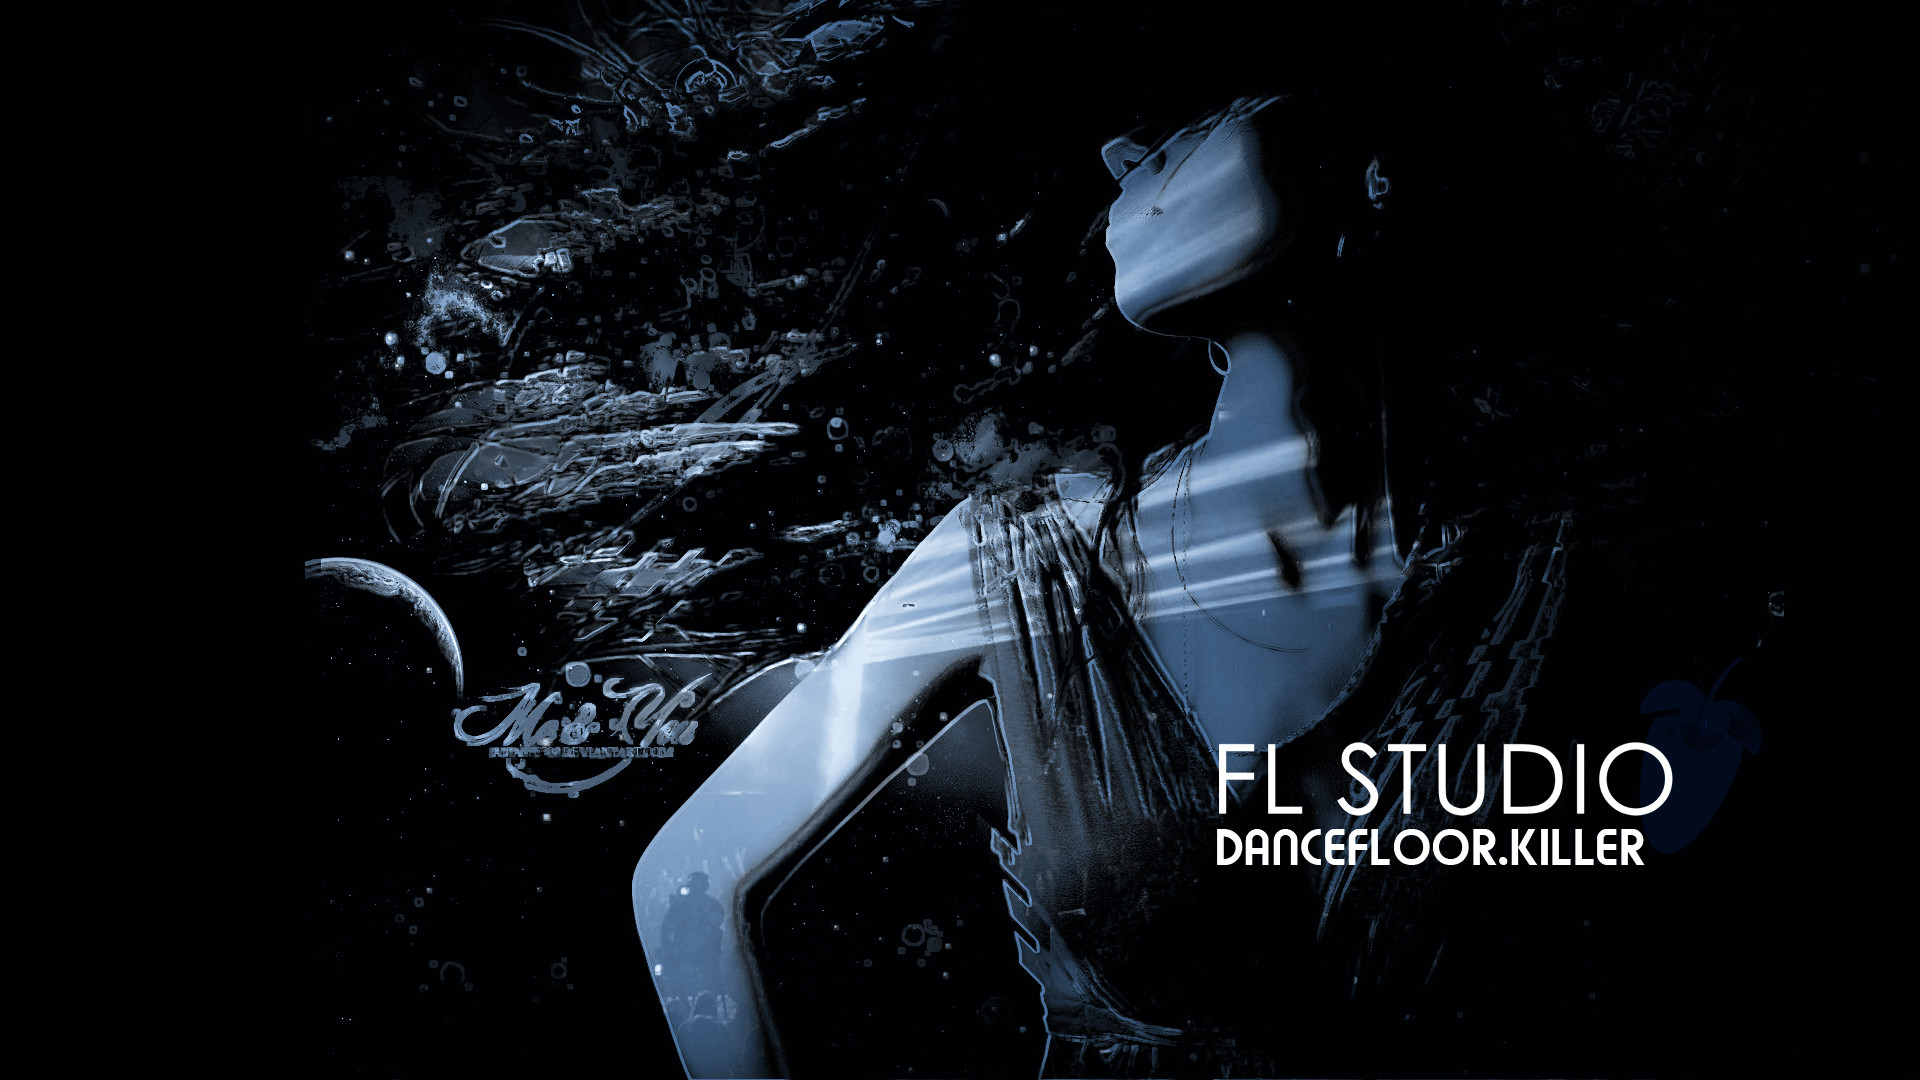 … FL STUDIO background image / wallpaper by Grooveagent